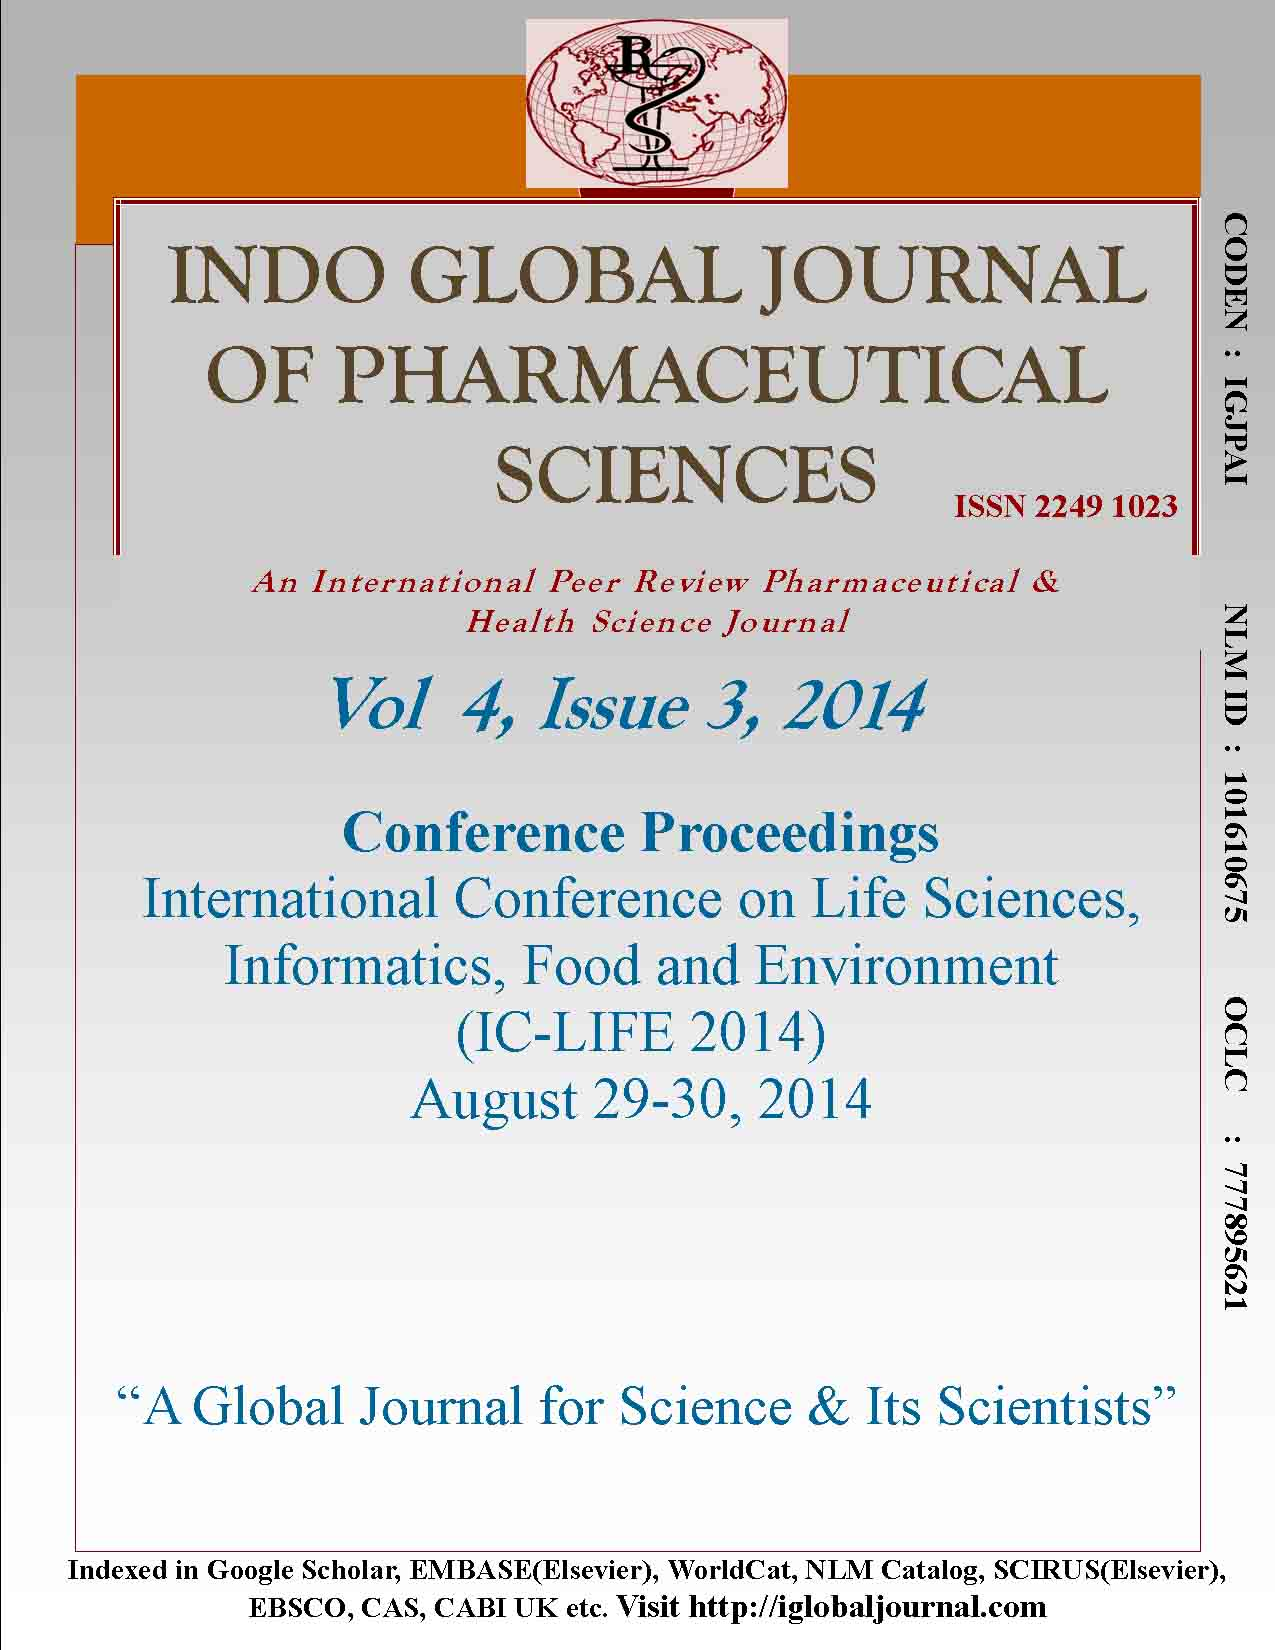 Front Cover IGJPS 2014, Vol 4, Issue 3